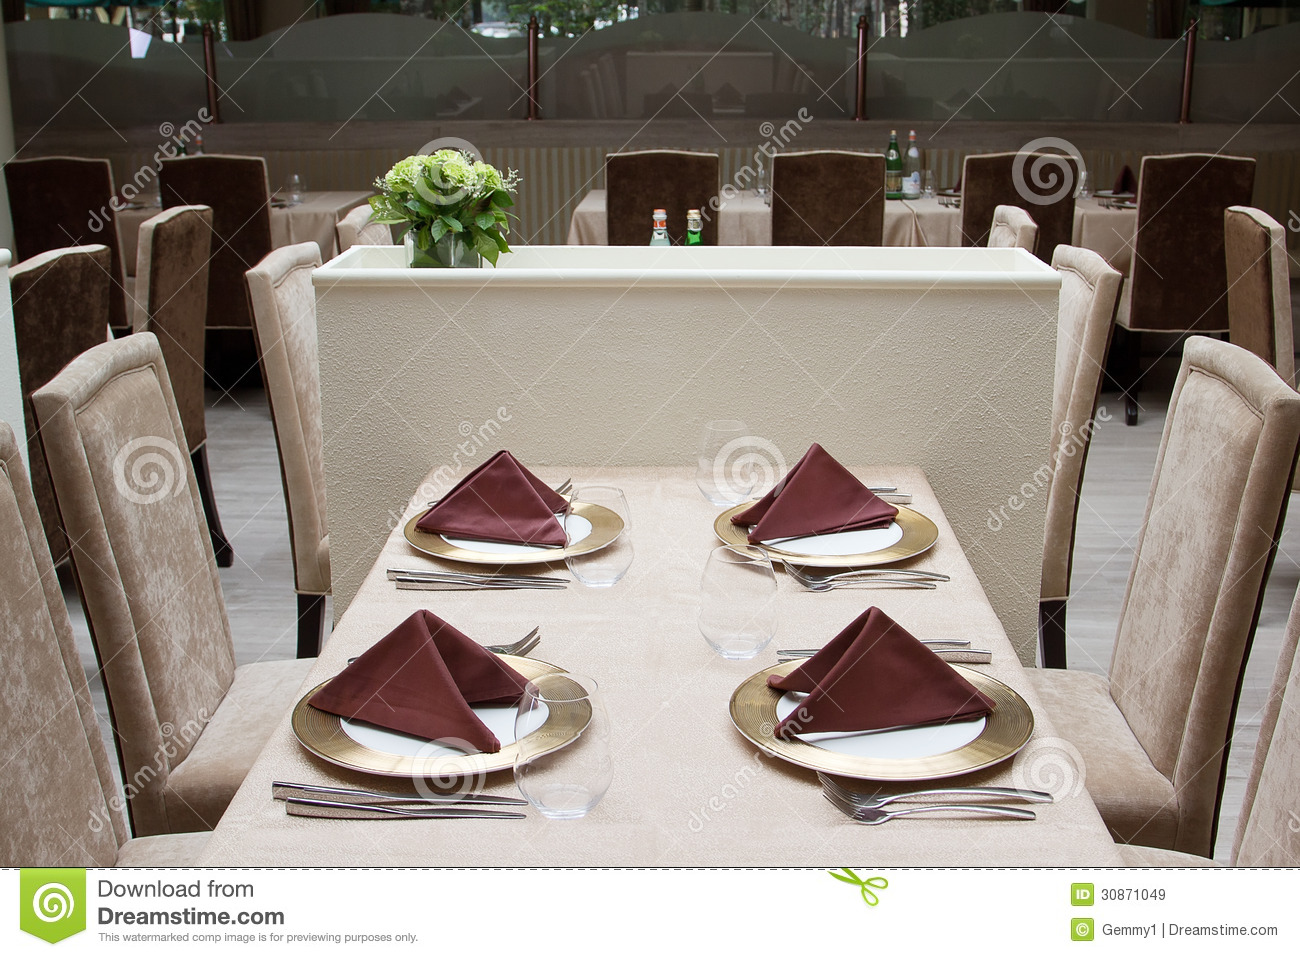 Modern restaurant table setting - Interior Of Modern Restaurant With Served Table Royalty Free Stock Images